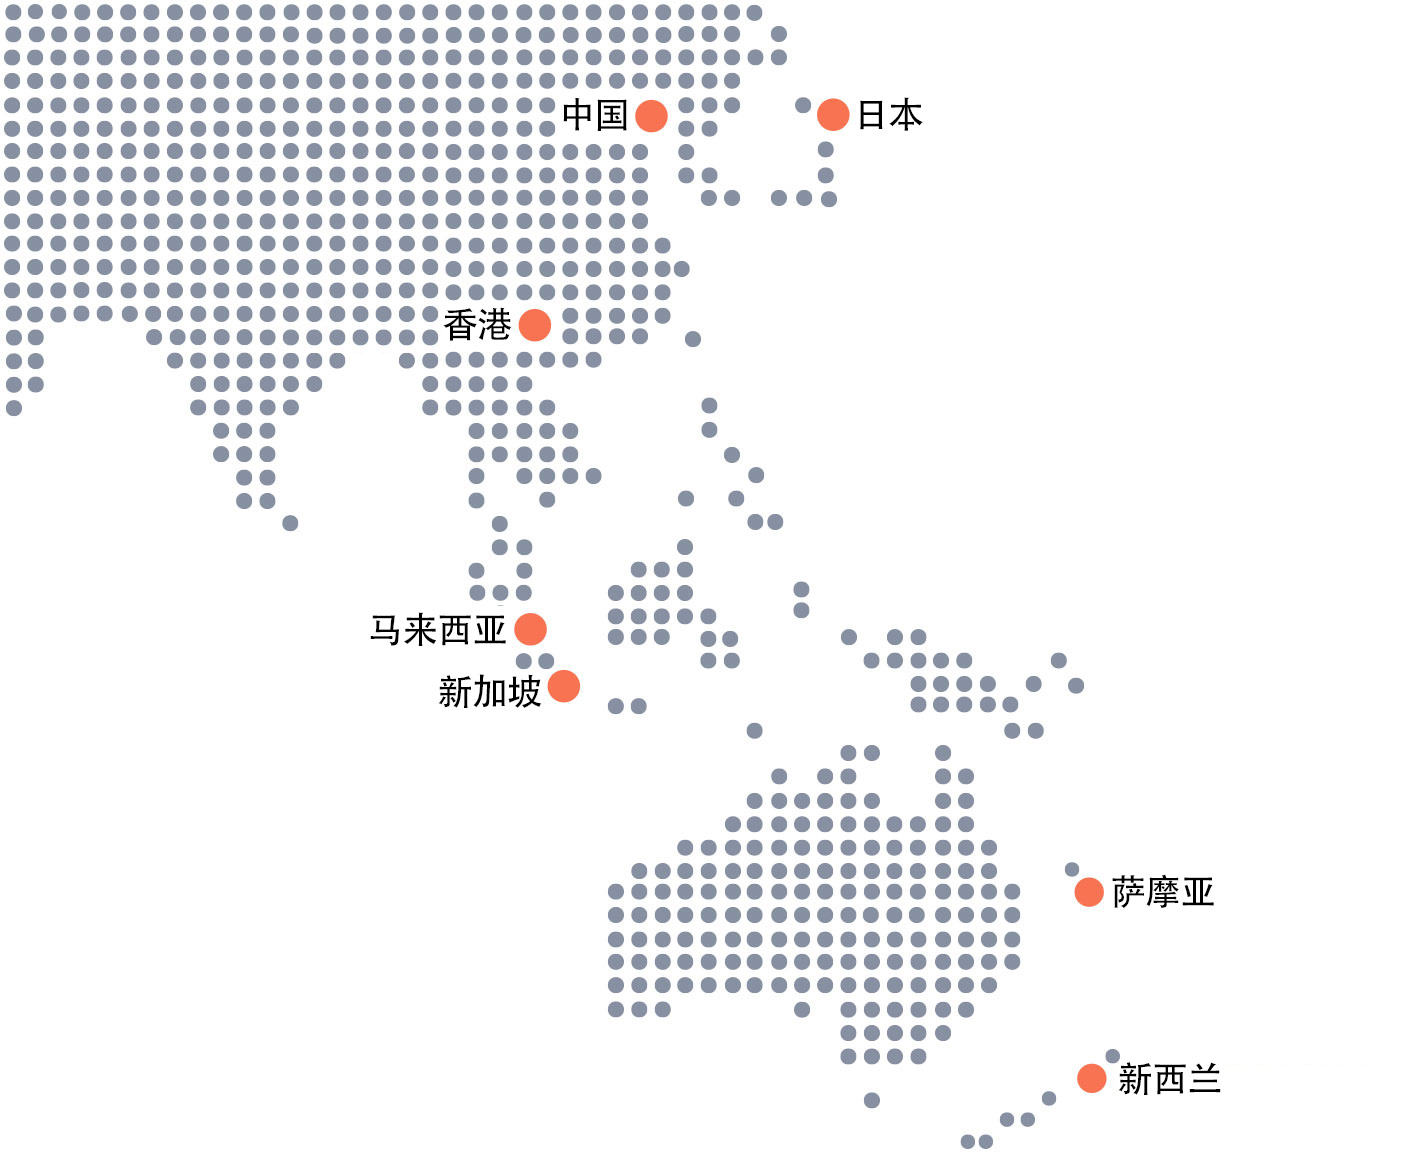 cp-global-network-chinese